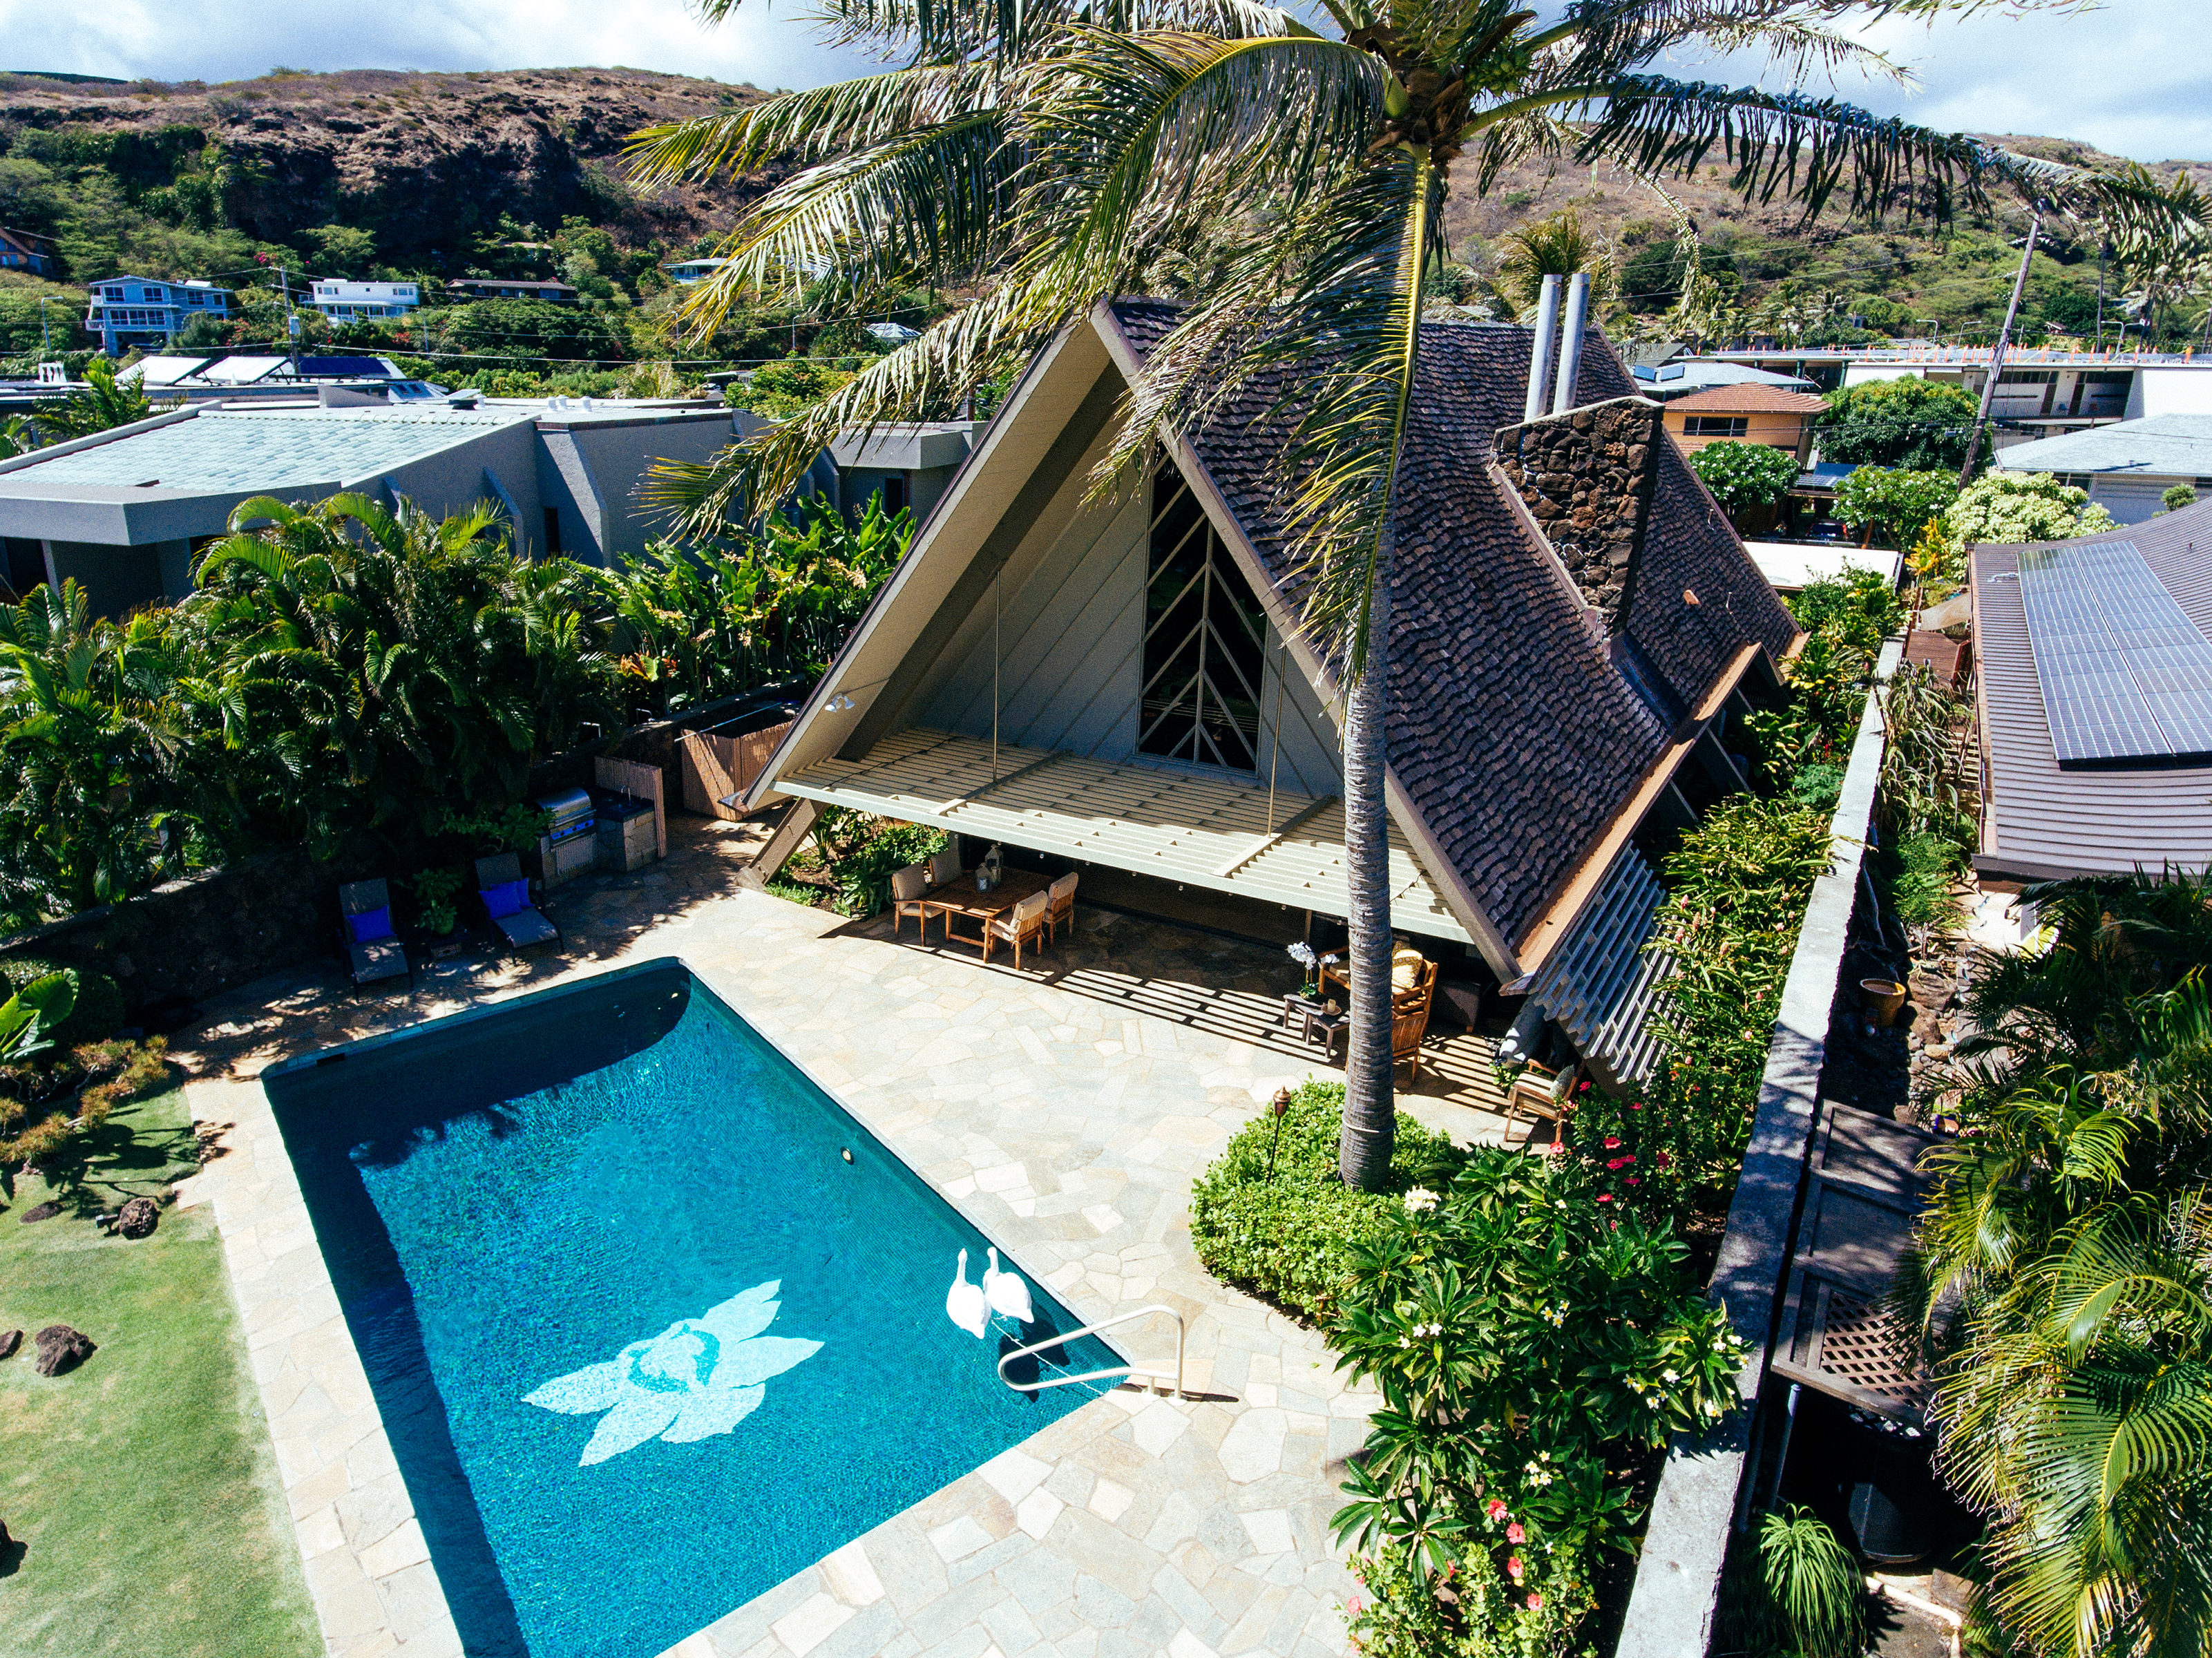 A-frame house with pool in tropical setting.